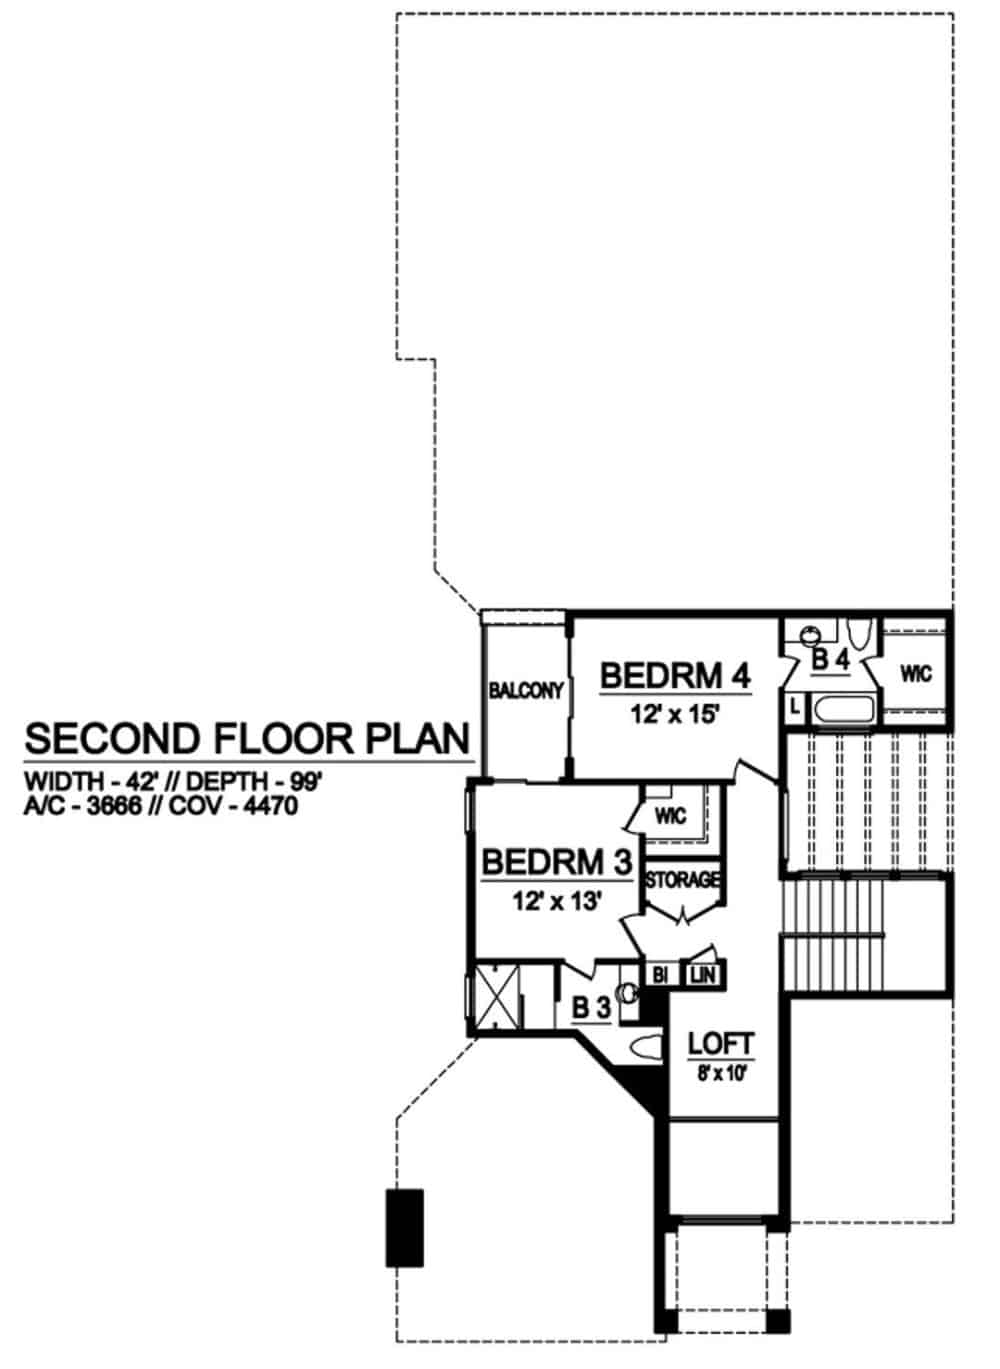 Second level floor plan with a loft and two bedroom suites.